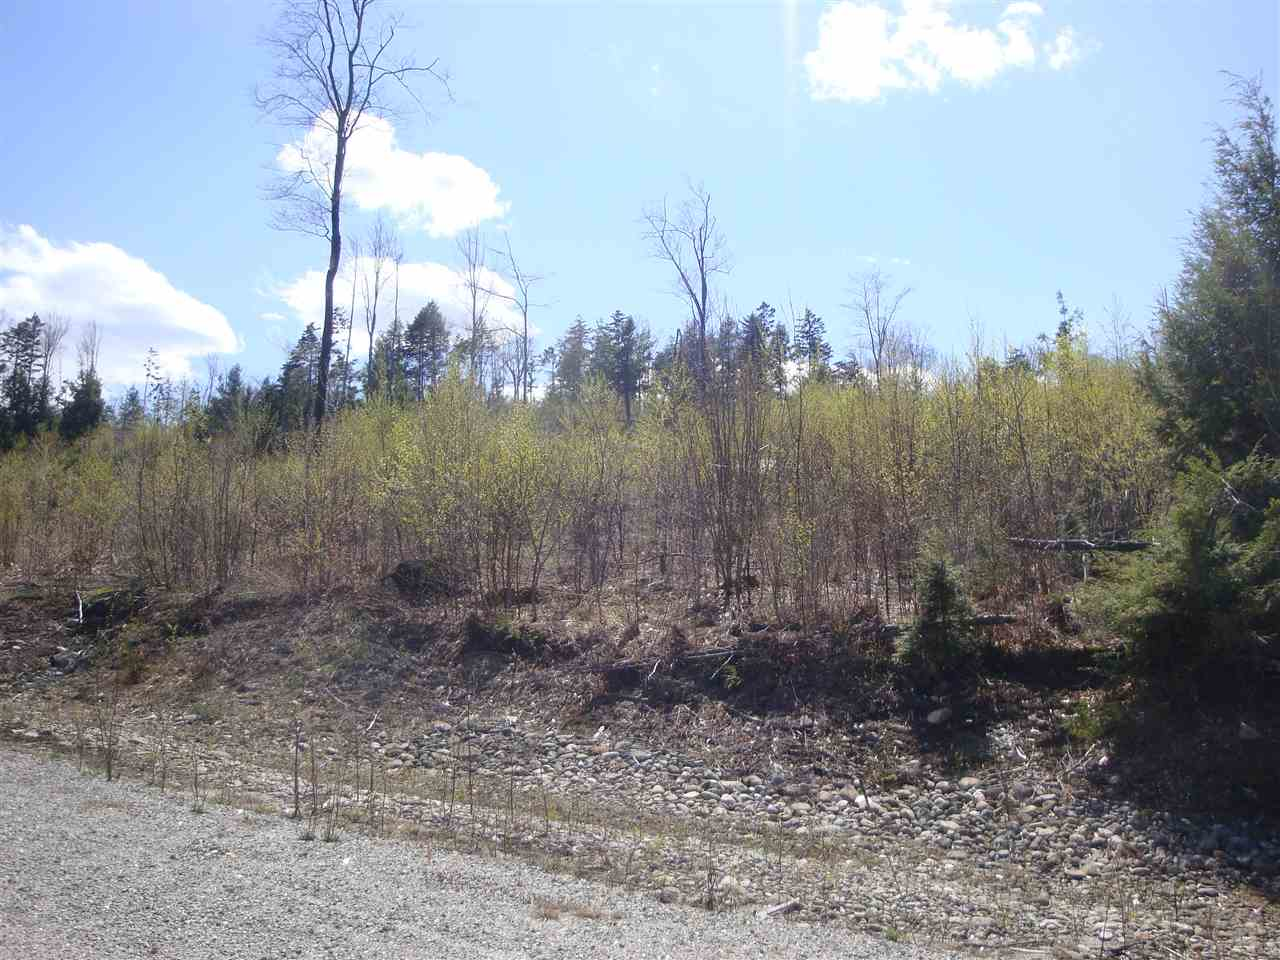 MLS 4805476: Lot 6 Old Fields Road, Groton NH